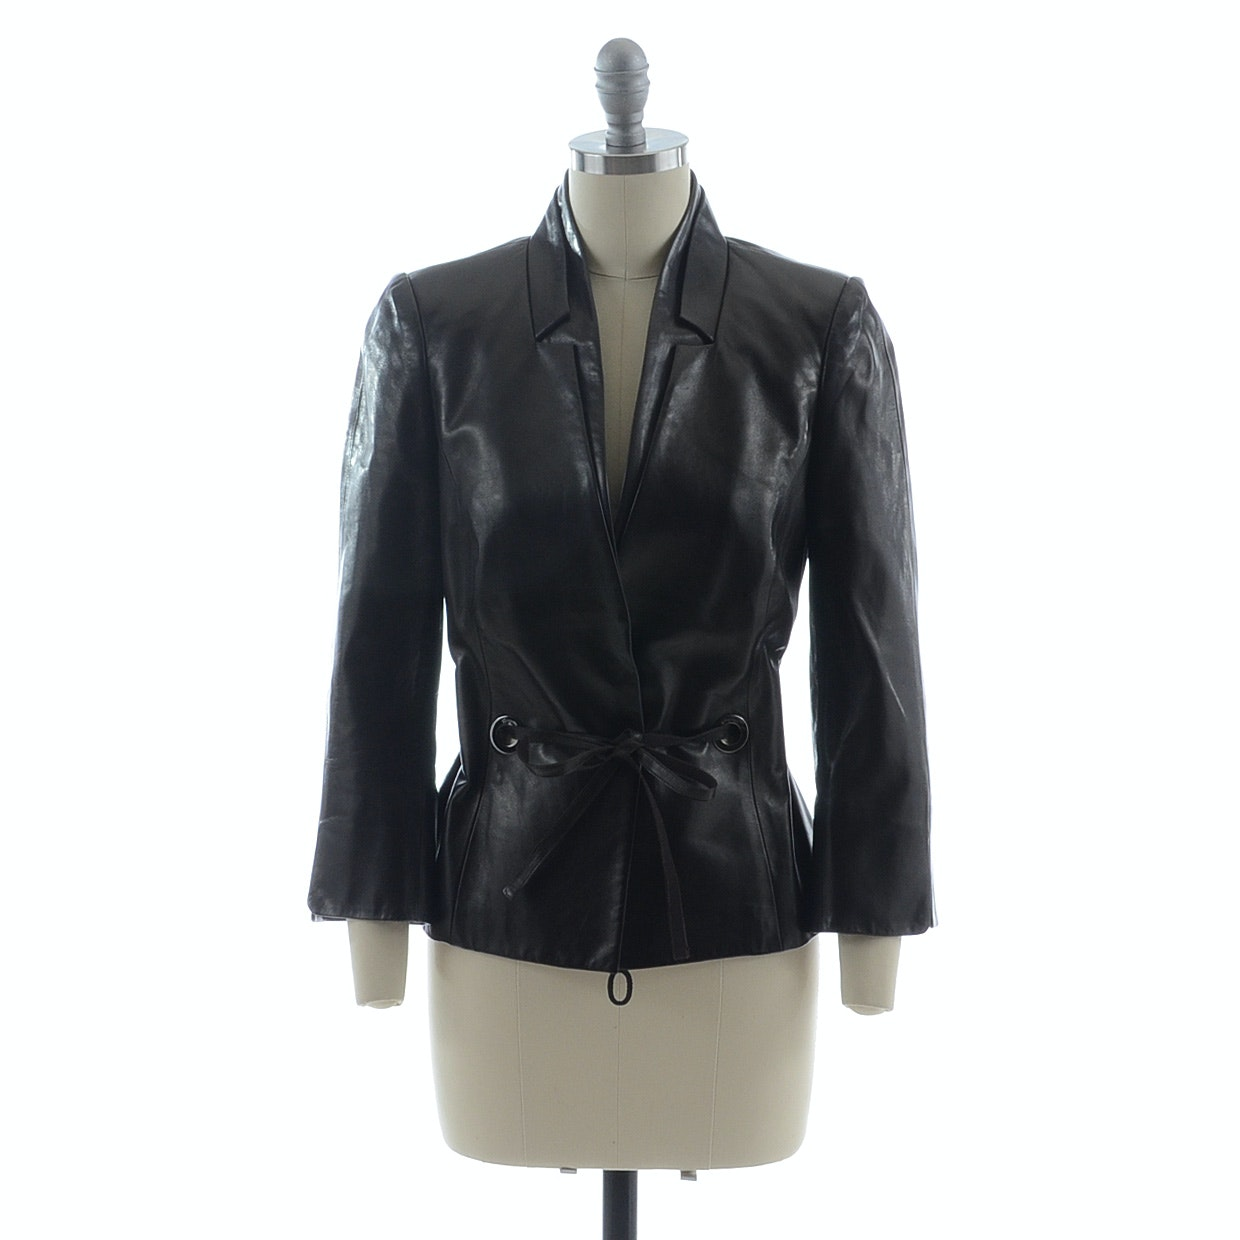 Salvatore Ferragamo Deep Brown Lambskin Leather Jacket with Grommets and Leather Tie Belt Trimmed in Grosgrain Ribbon Susan Bought in Rome While Vacationing